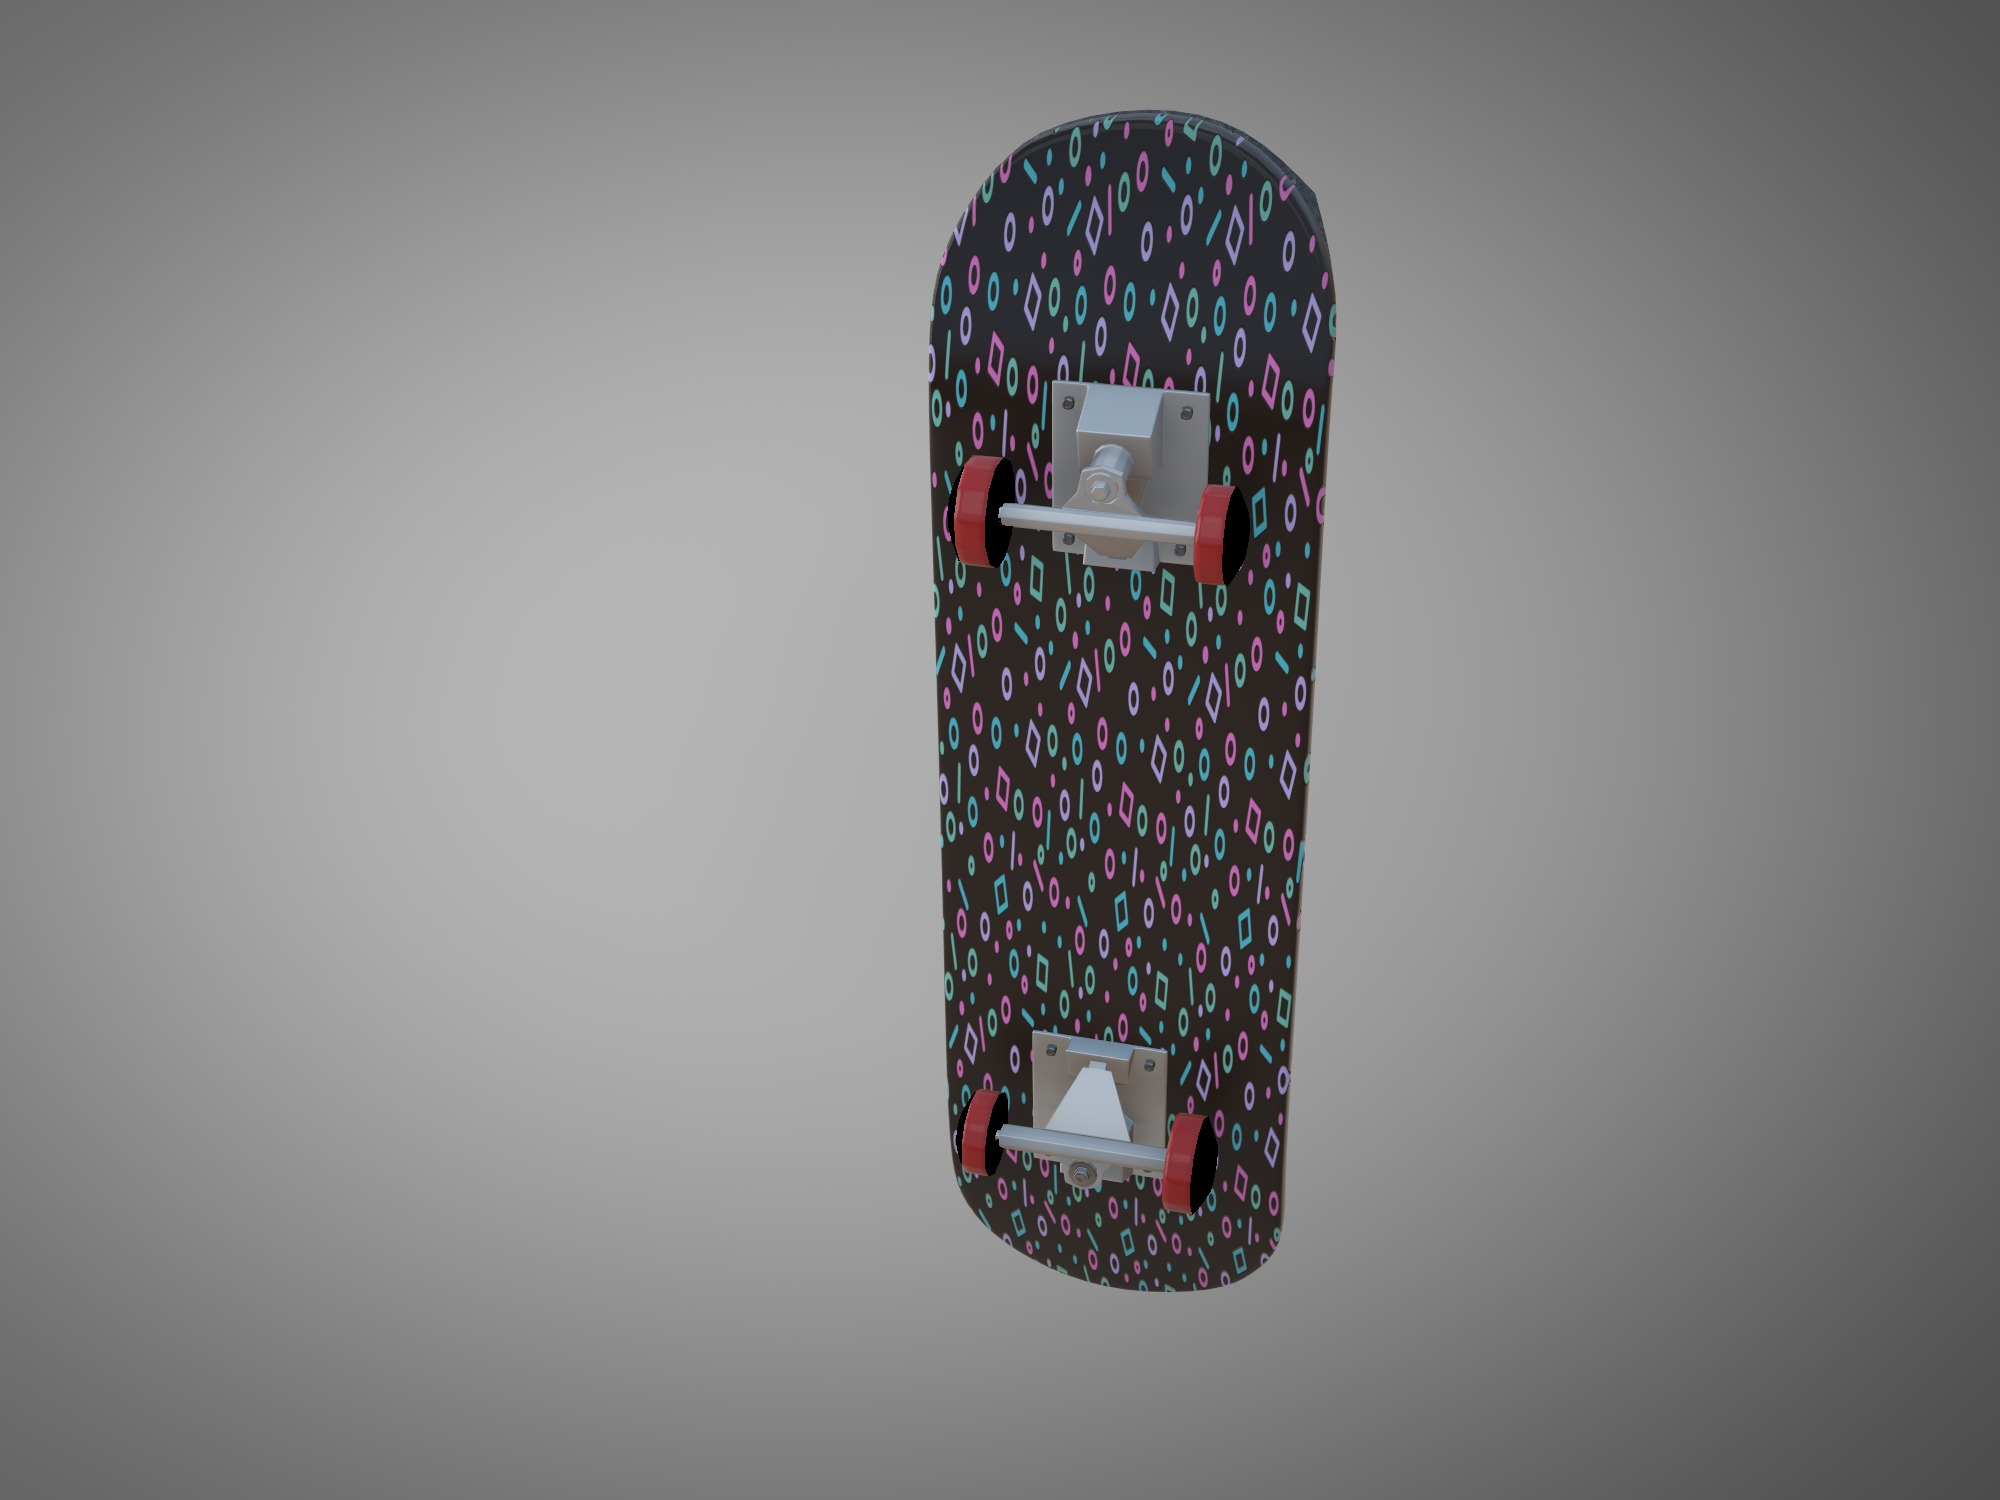 sk8rboi (copy) - 3D design by Ado Velazquez on Dec 17, 2018